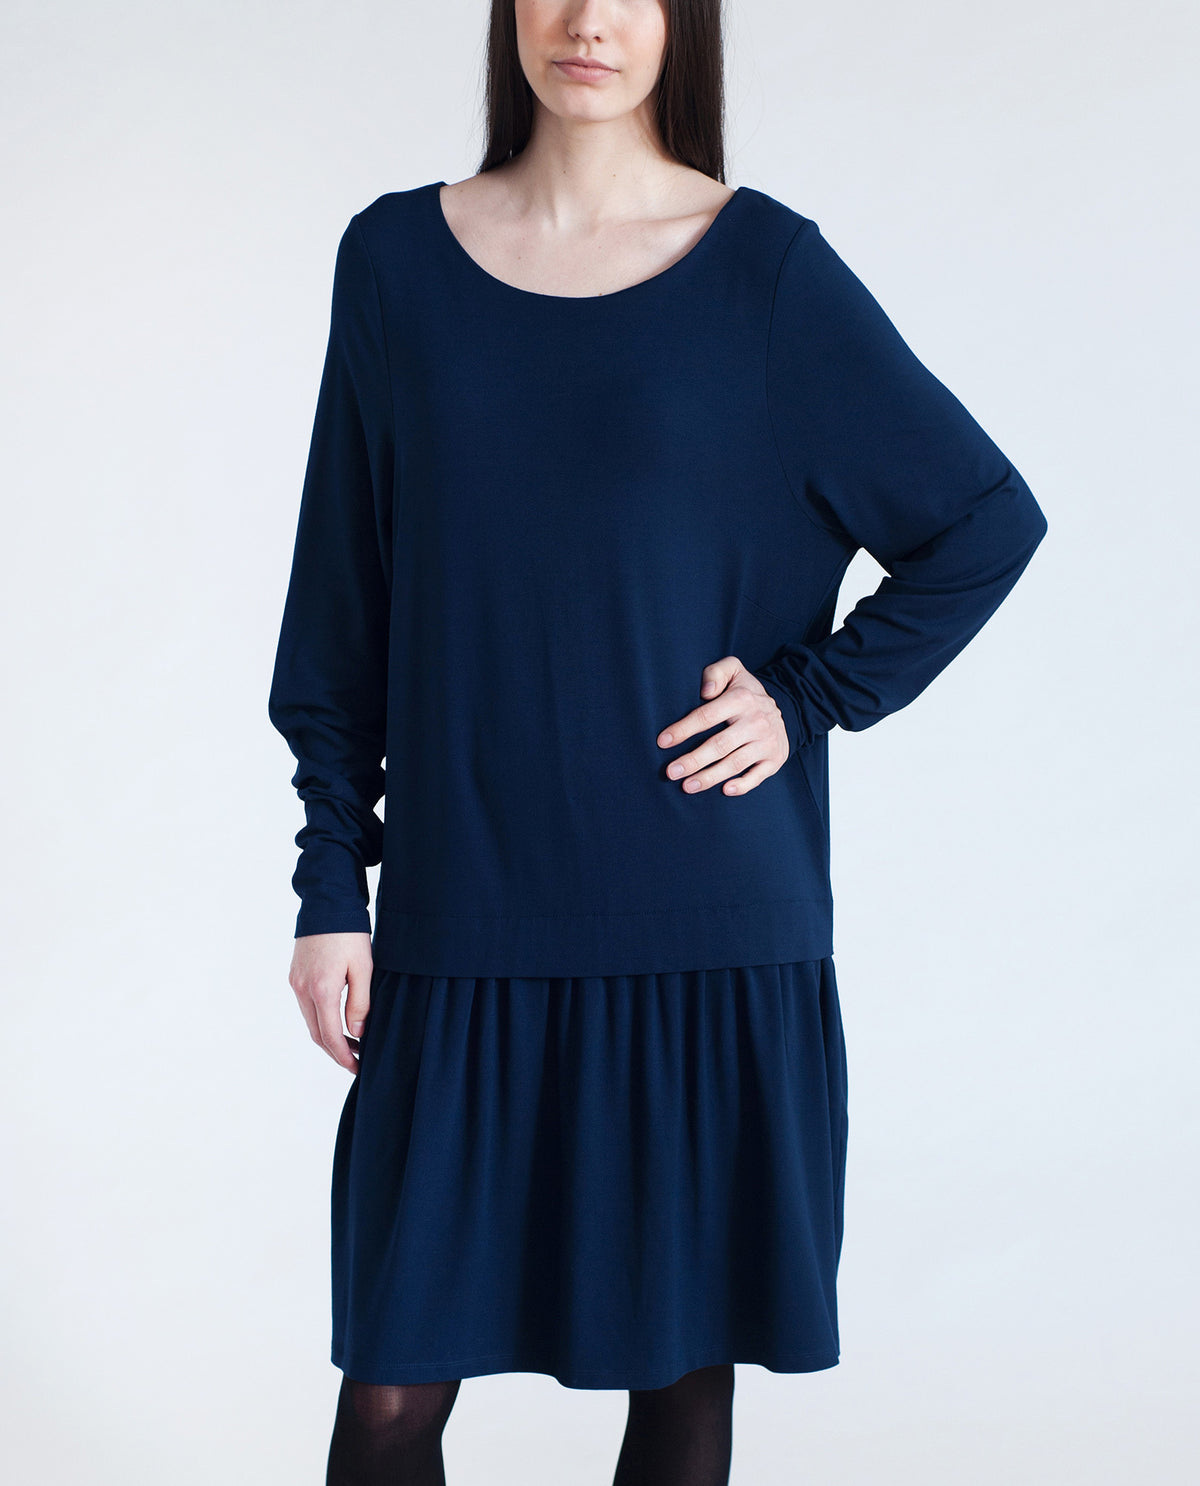 DAWN Dropped Waist Dress In Navy